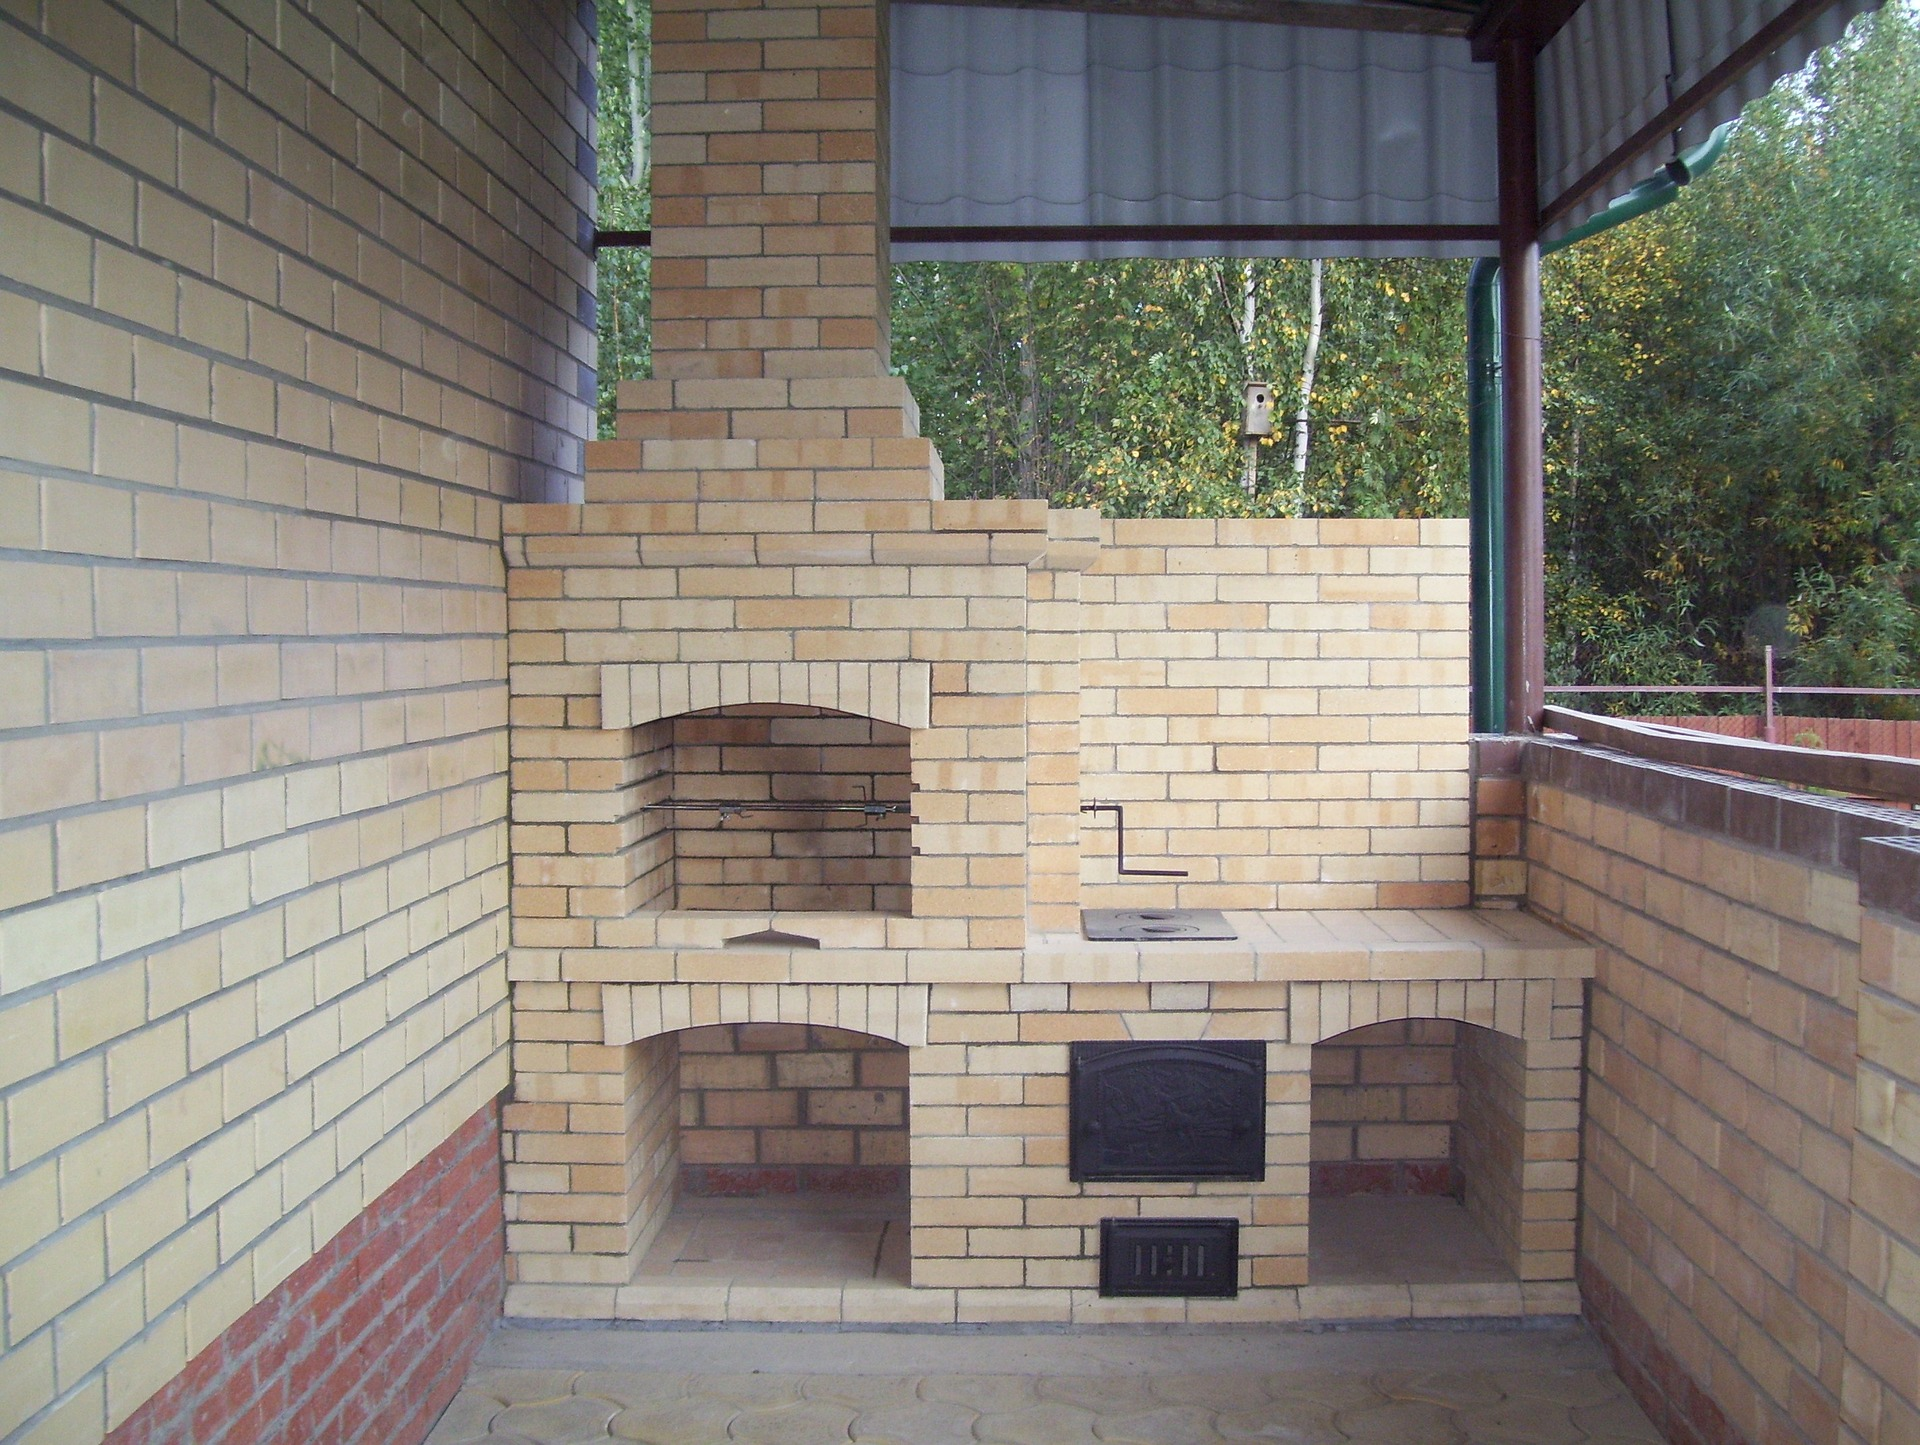 Wisconsin Houses for Sale with Fireplace 210K to 219K